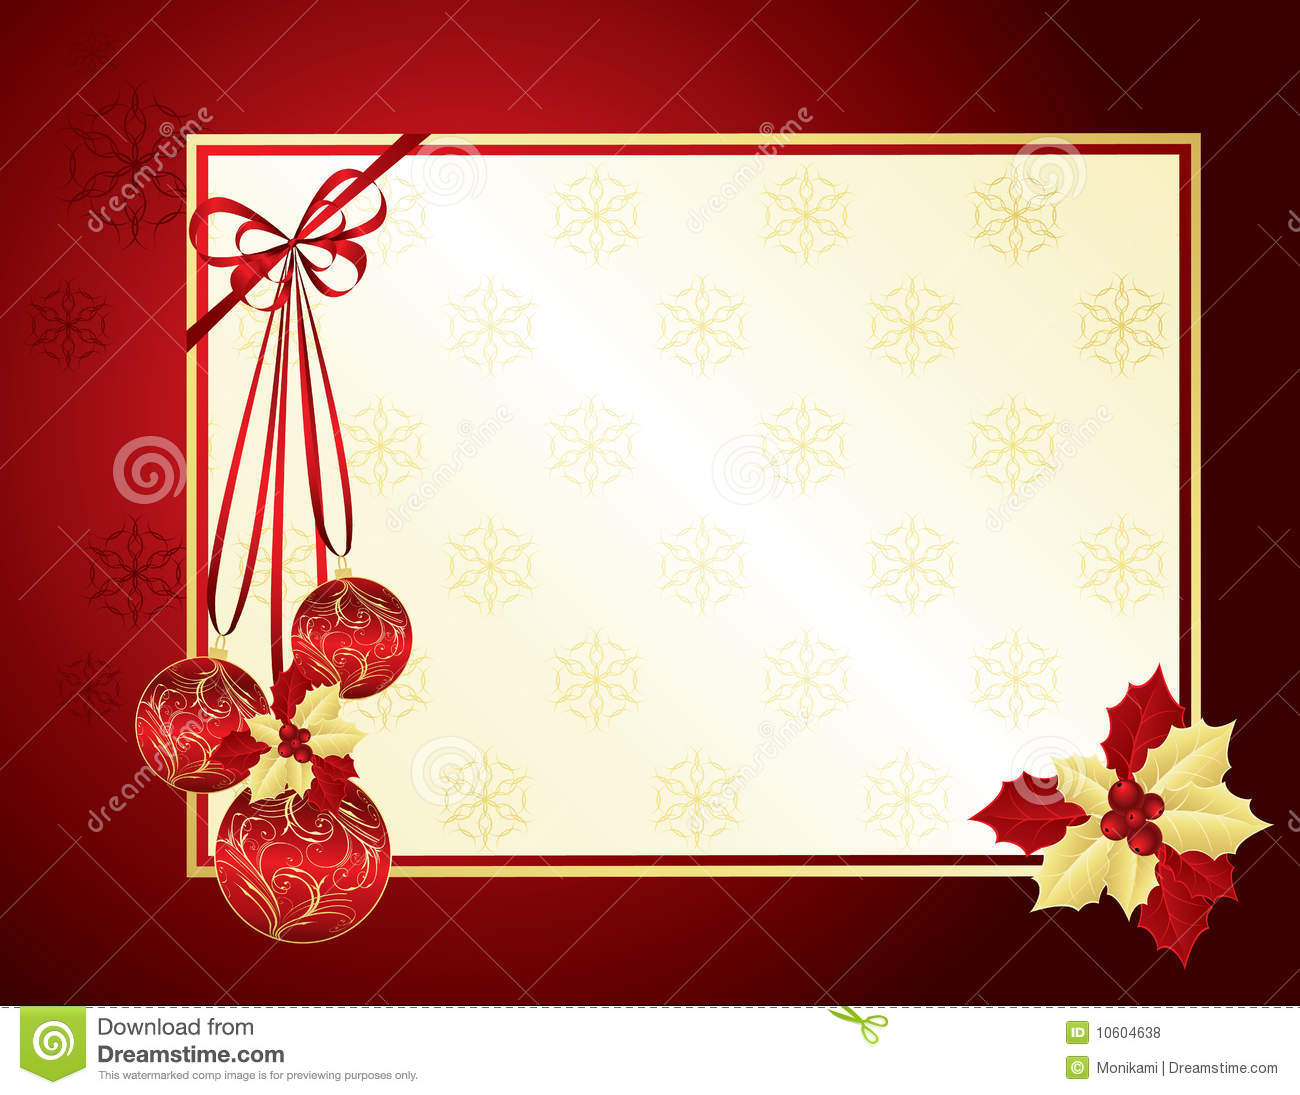 Red And Gold Christmas Background Royalty Free Stock Photos ...